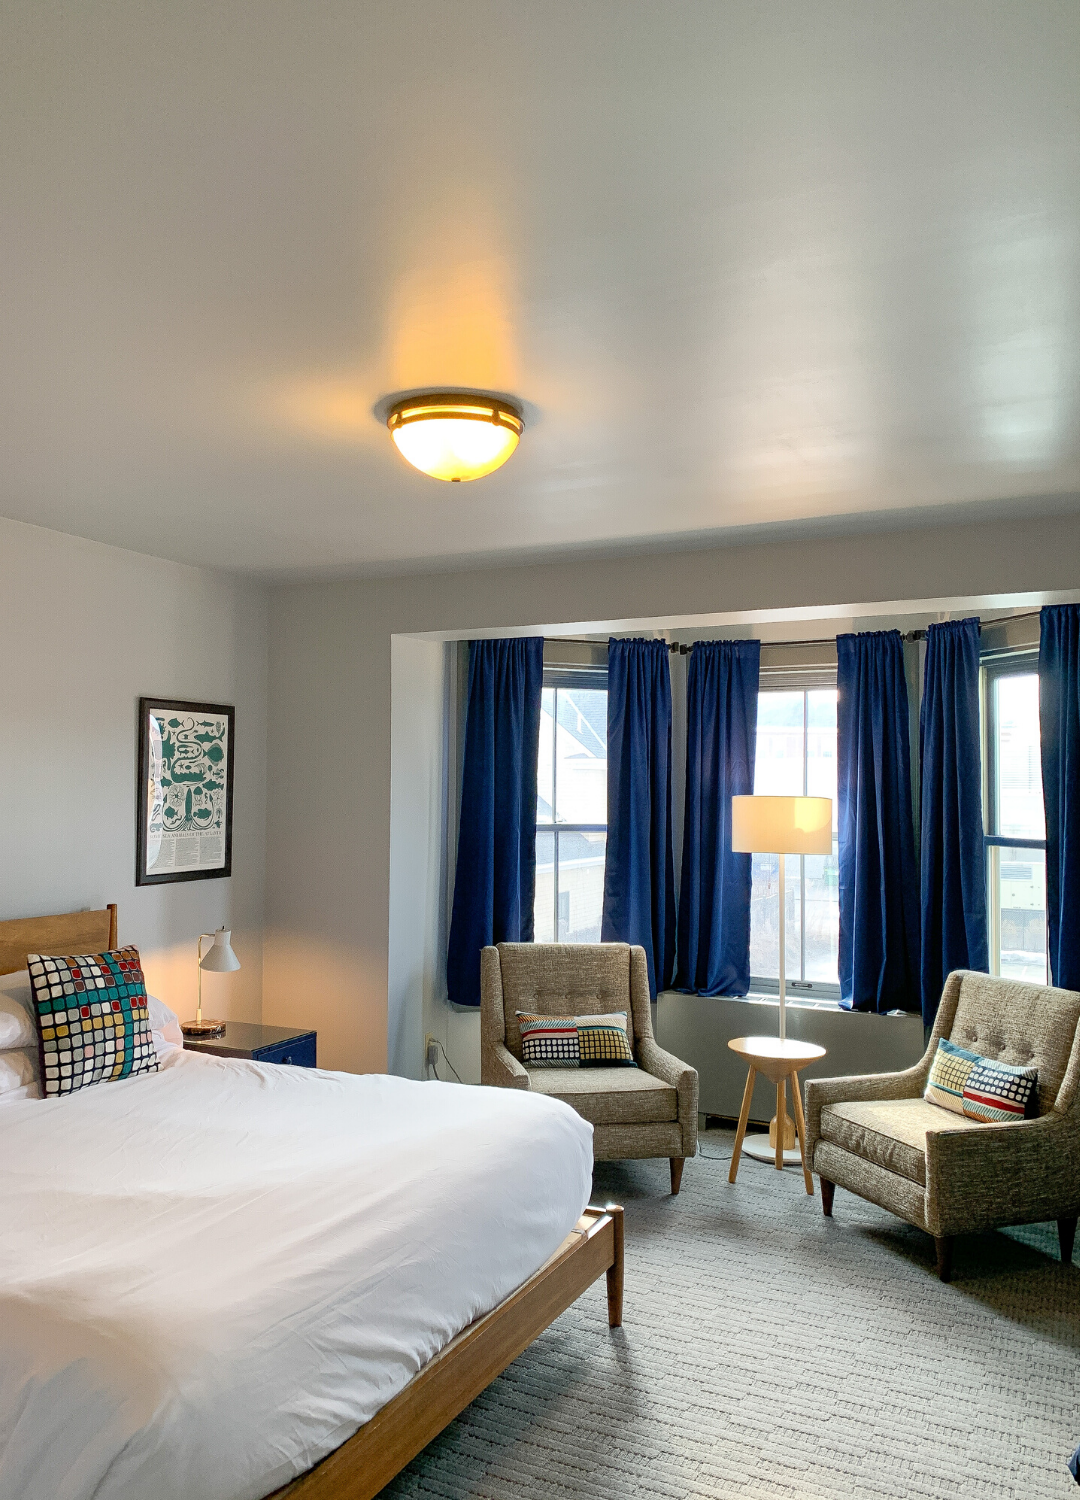 The_Hotel_Portsmouth_Places_to_Stay_Portsmouth_NH_4